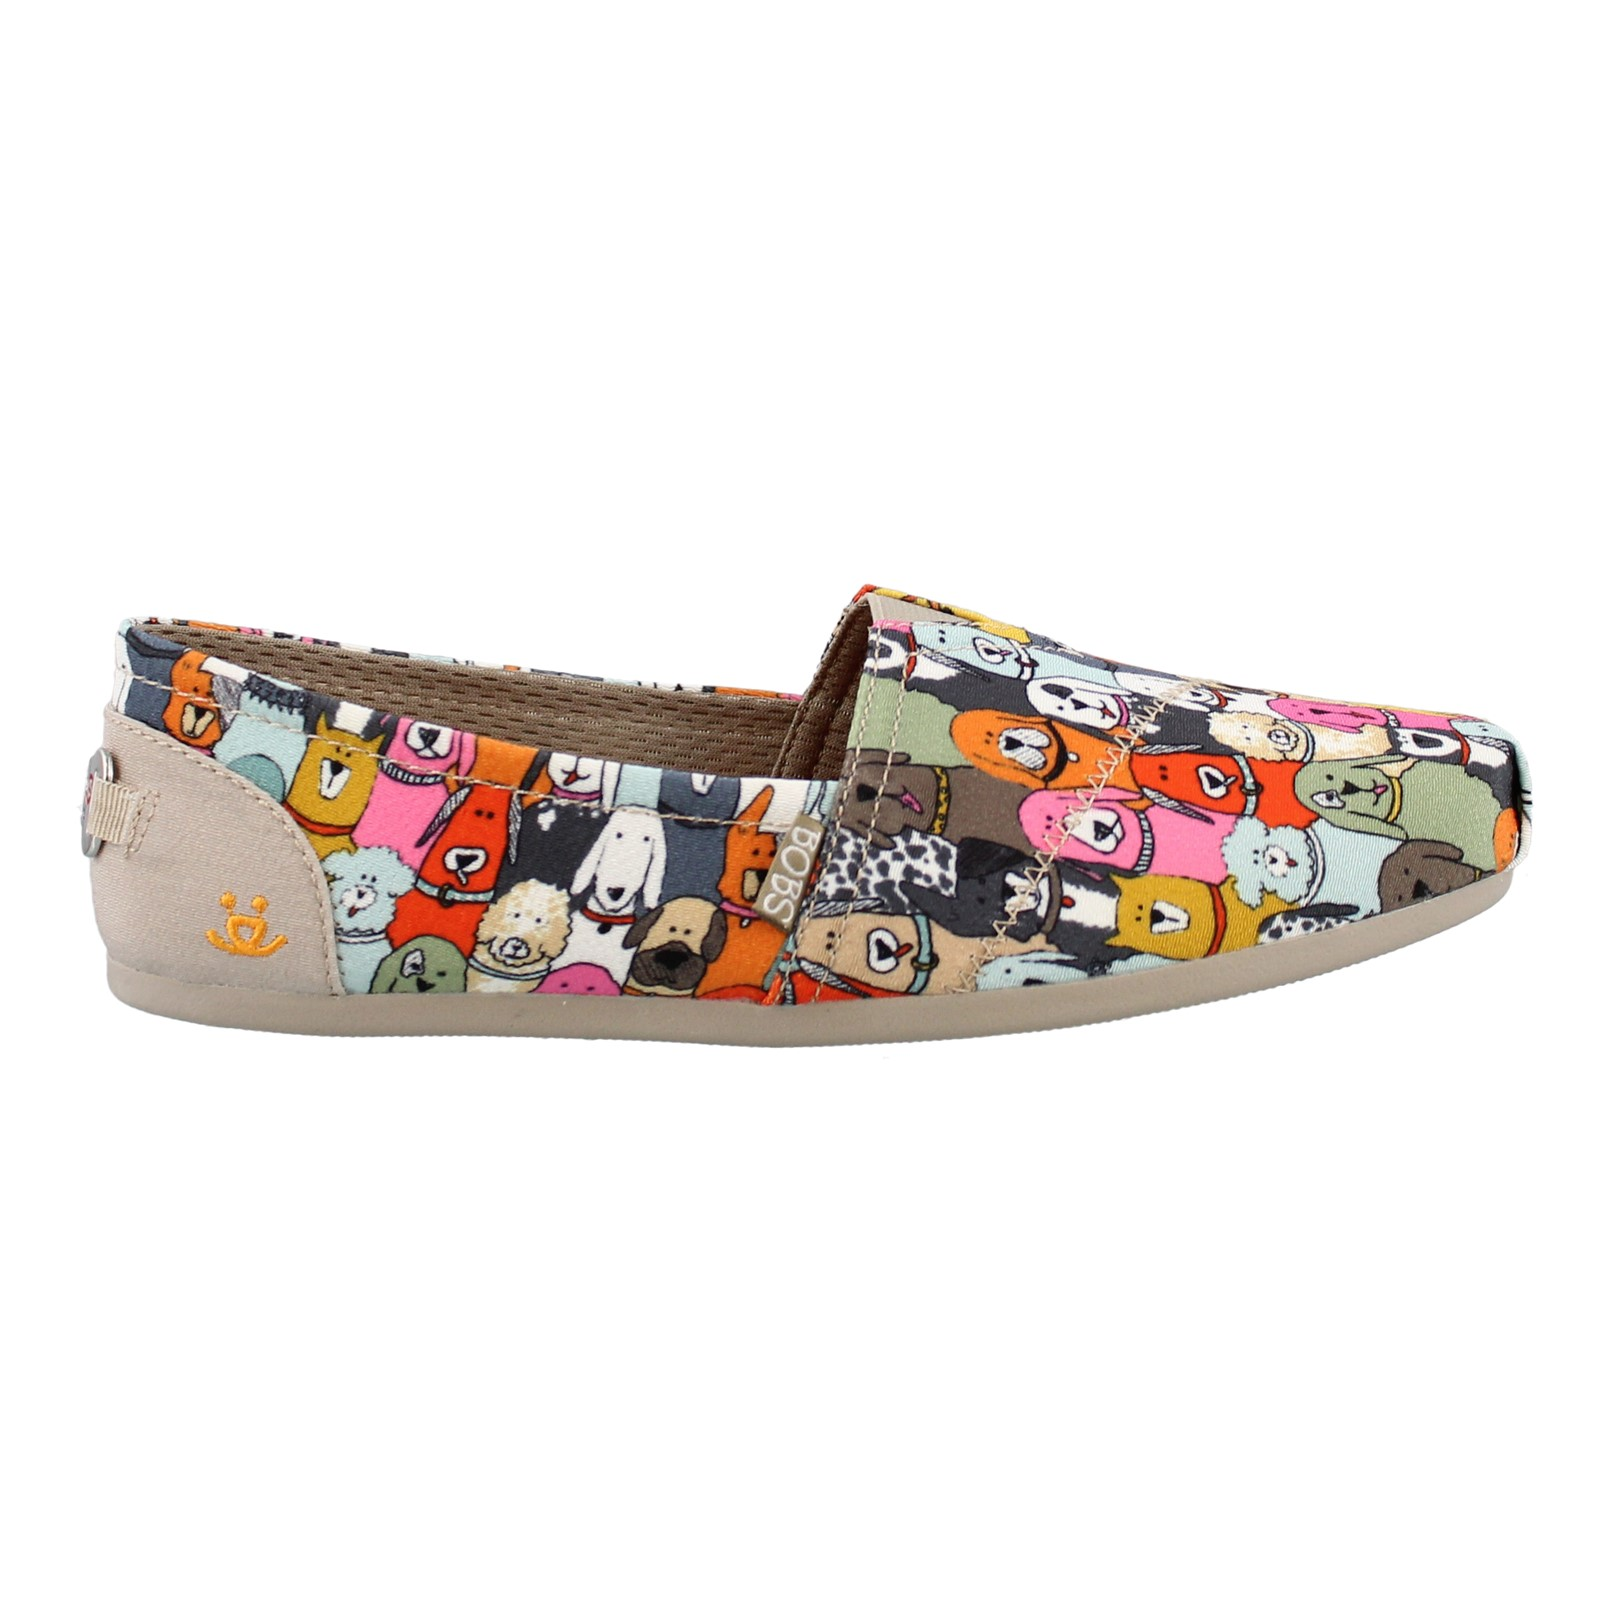 Women's Skechers, Bobs Plush Wag Party Slip on Shoes